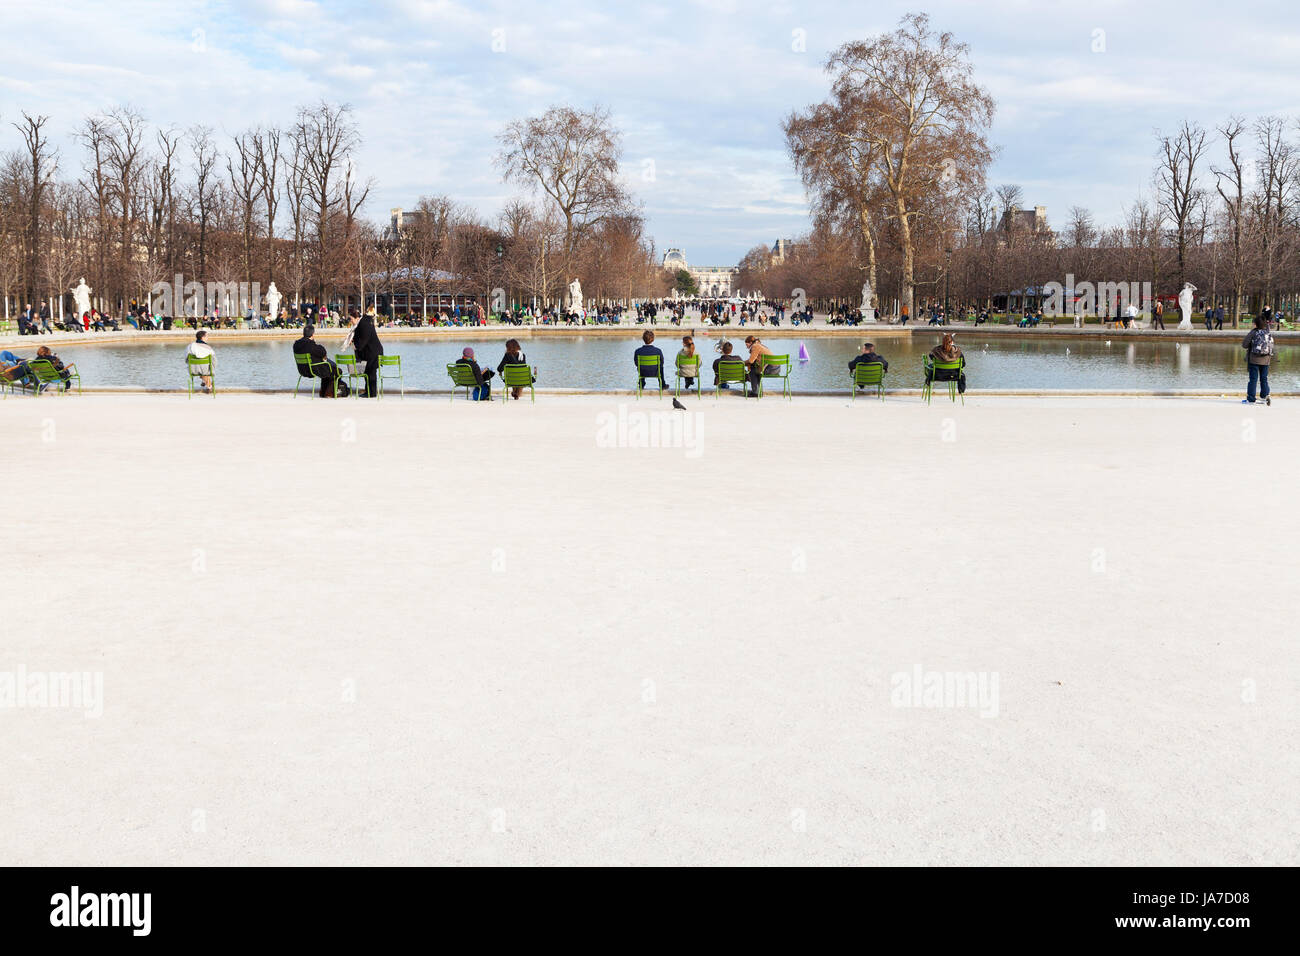 PARIS, FRANCE - MARCH 5: Grand Basin Octagonal in Tuileries Garden. In 1664 landscape architect Andre Le Notre redesigned - Stock Image